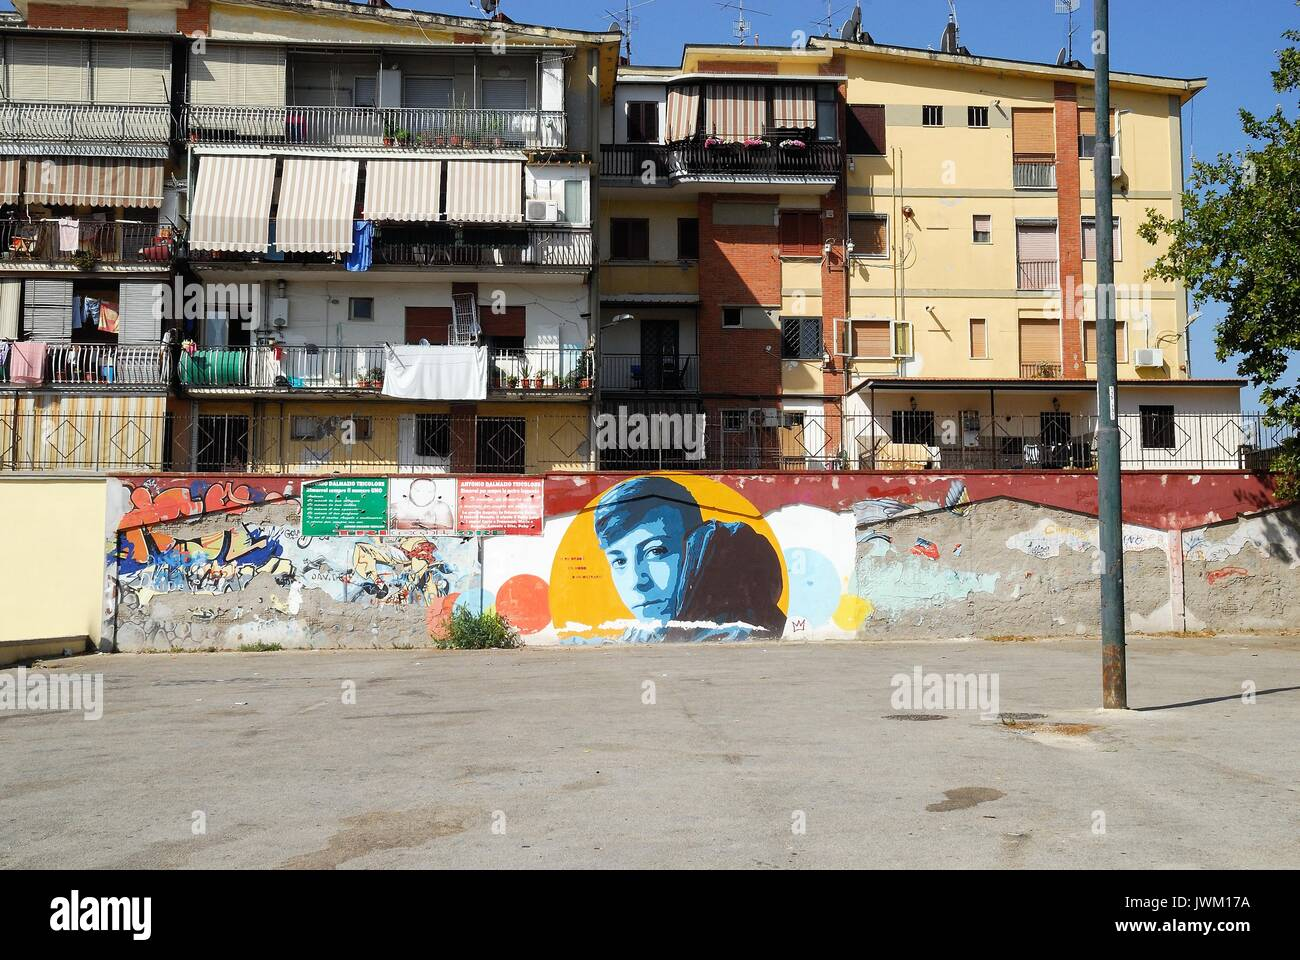 Naples, Italy. A mural on a wall of a degraded neighborhood called Rione Traiano. A mural represents Davide Bifolco, a boy killed by a carabiniere  because he did not stop at a roadblock with his scooter. - Stock Image